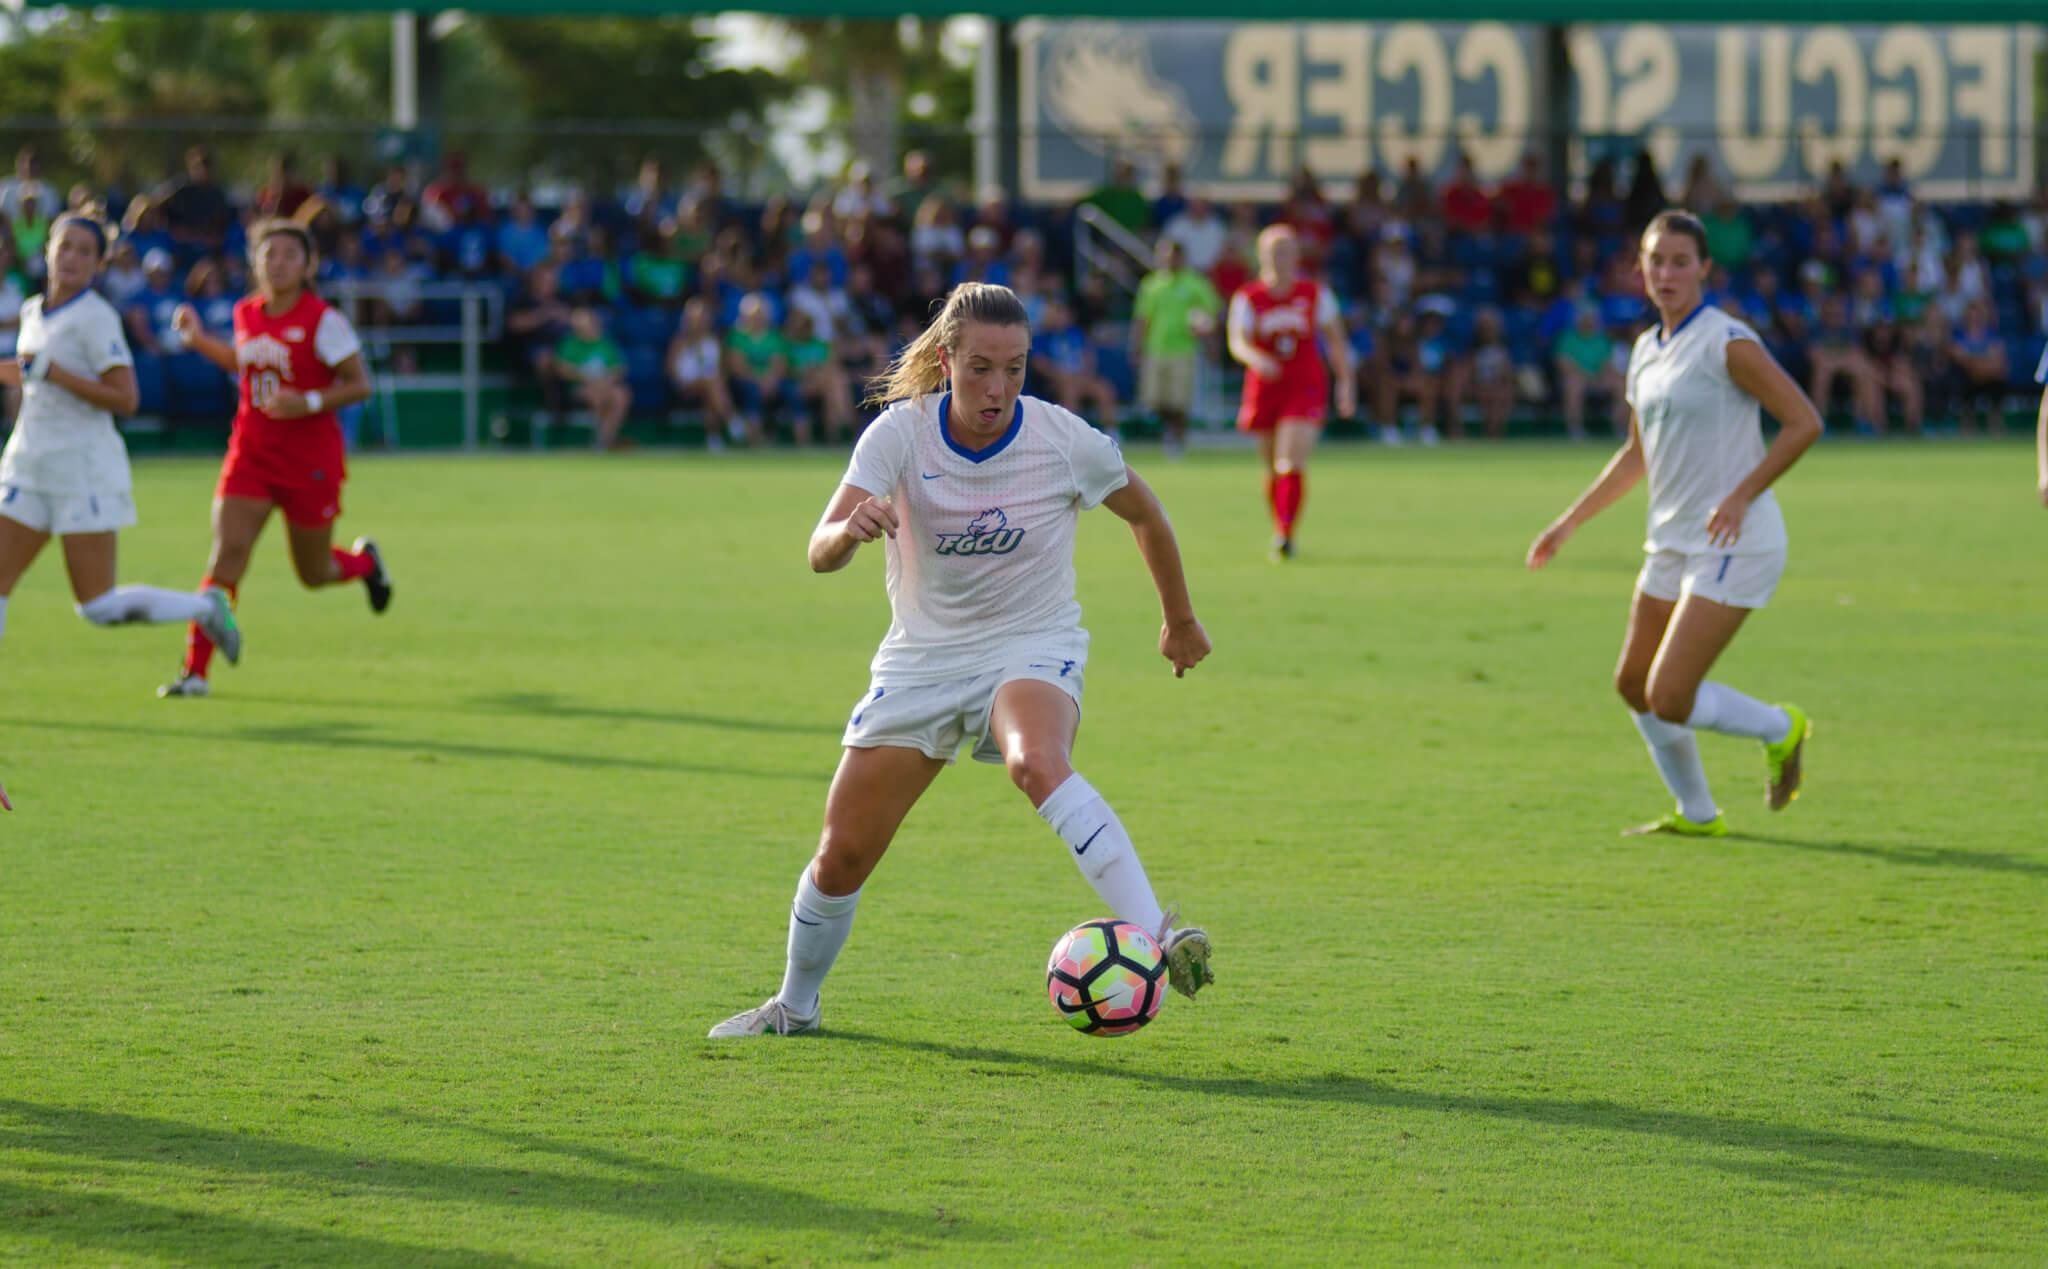 Preview: FGCU women's soccer at Liberty